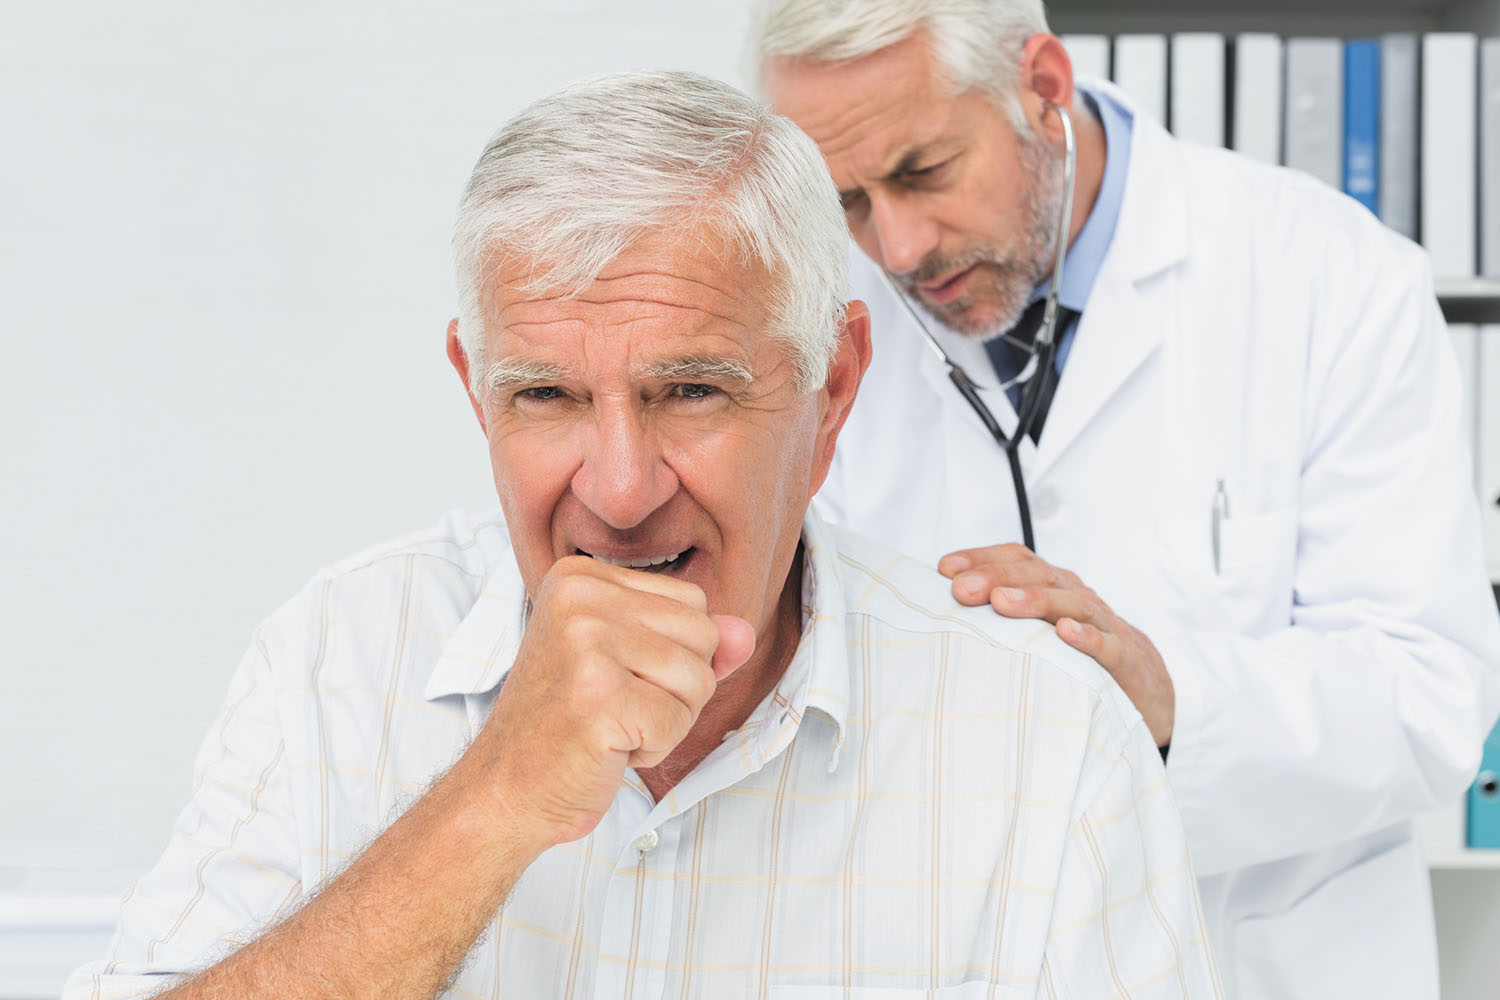 Cracking the cough code - Harvard Health